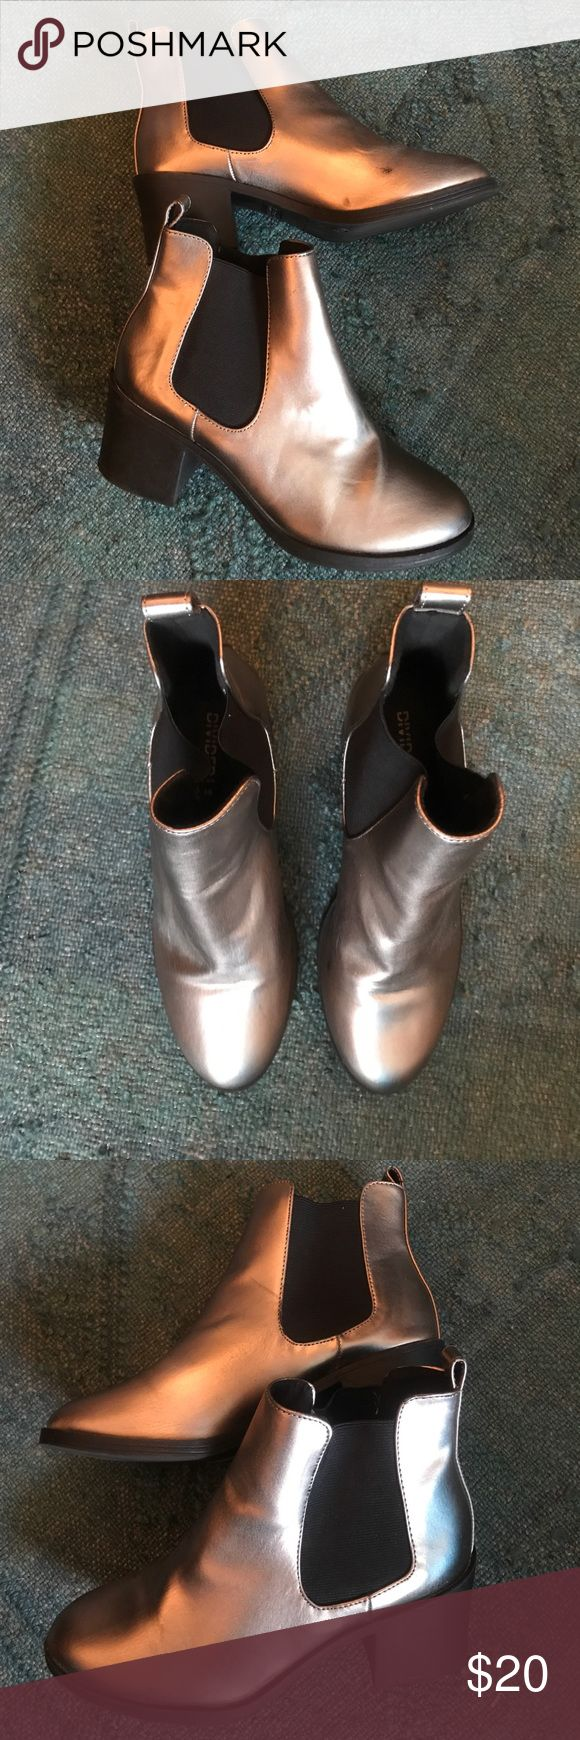 Silver metallic booties with heel From H&M divided, slightly worn booties silver metallic. As shown in photo there's a worn spot (black), on the inner area near toe. That's the only flaw, so this price is a steal! Size 8 US Divided Shoes Ankle Boots & Booties